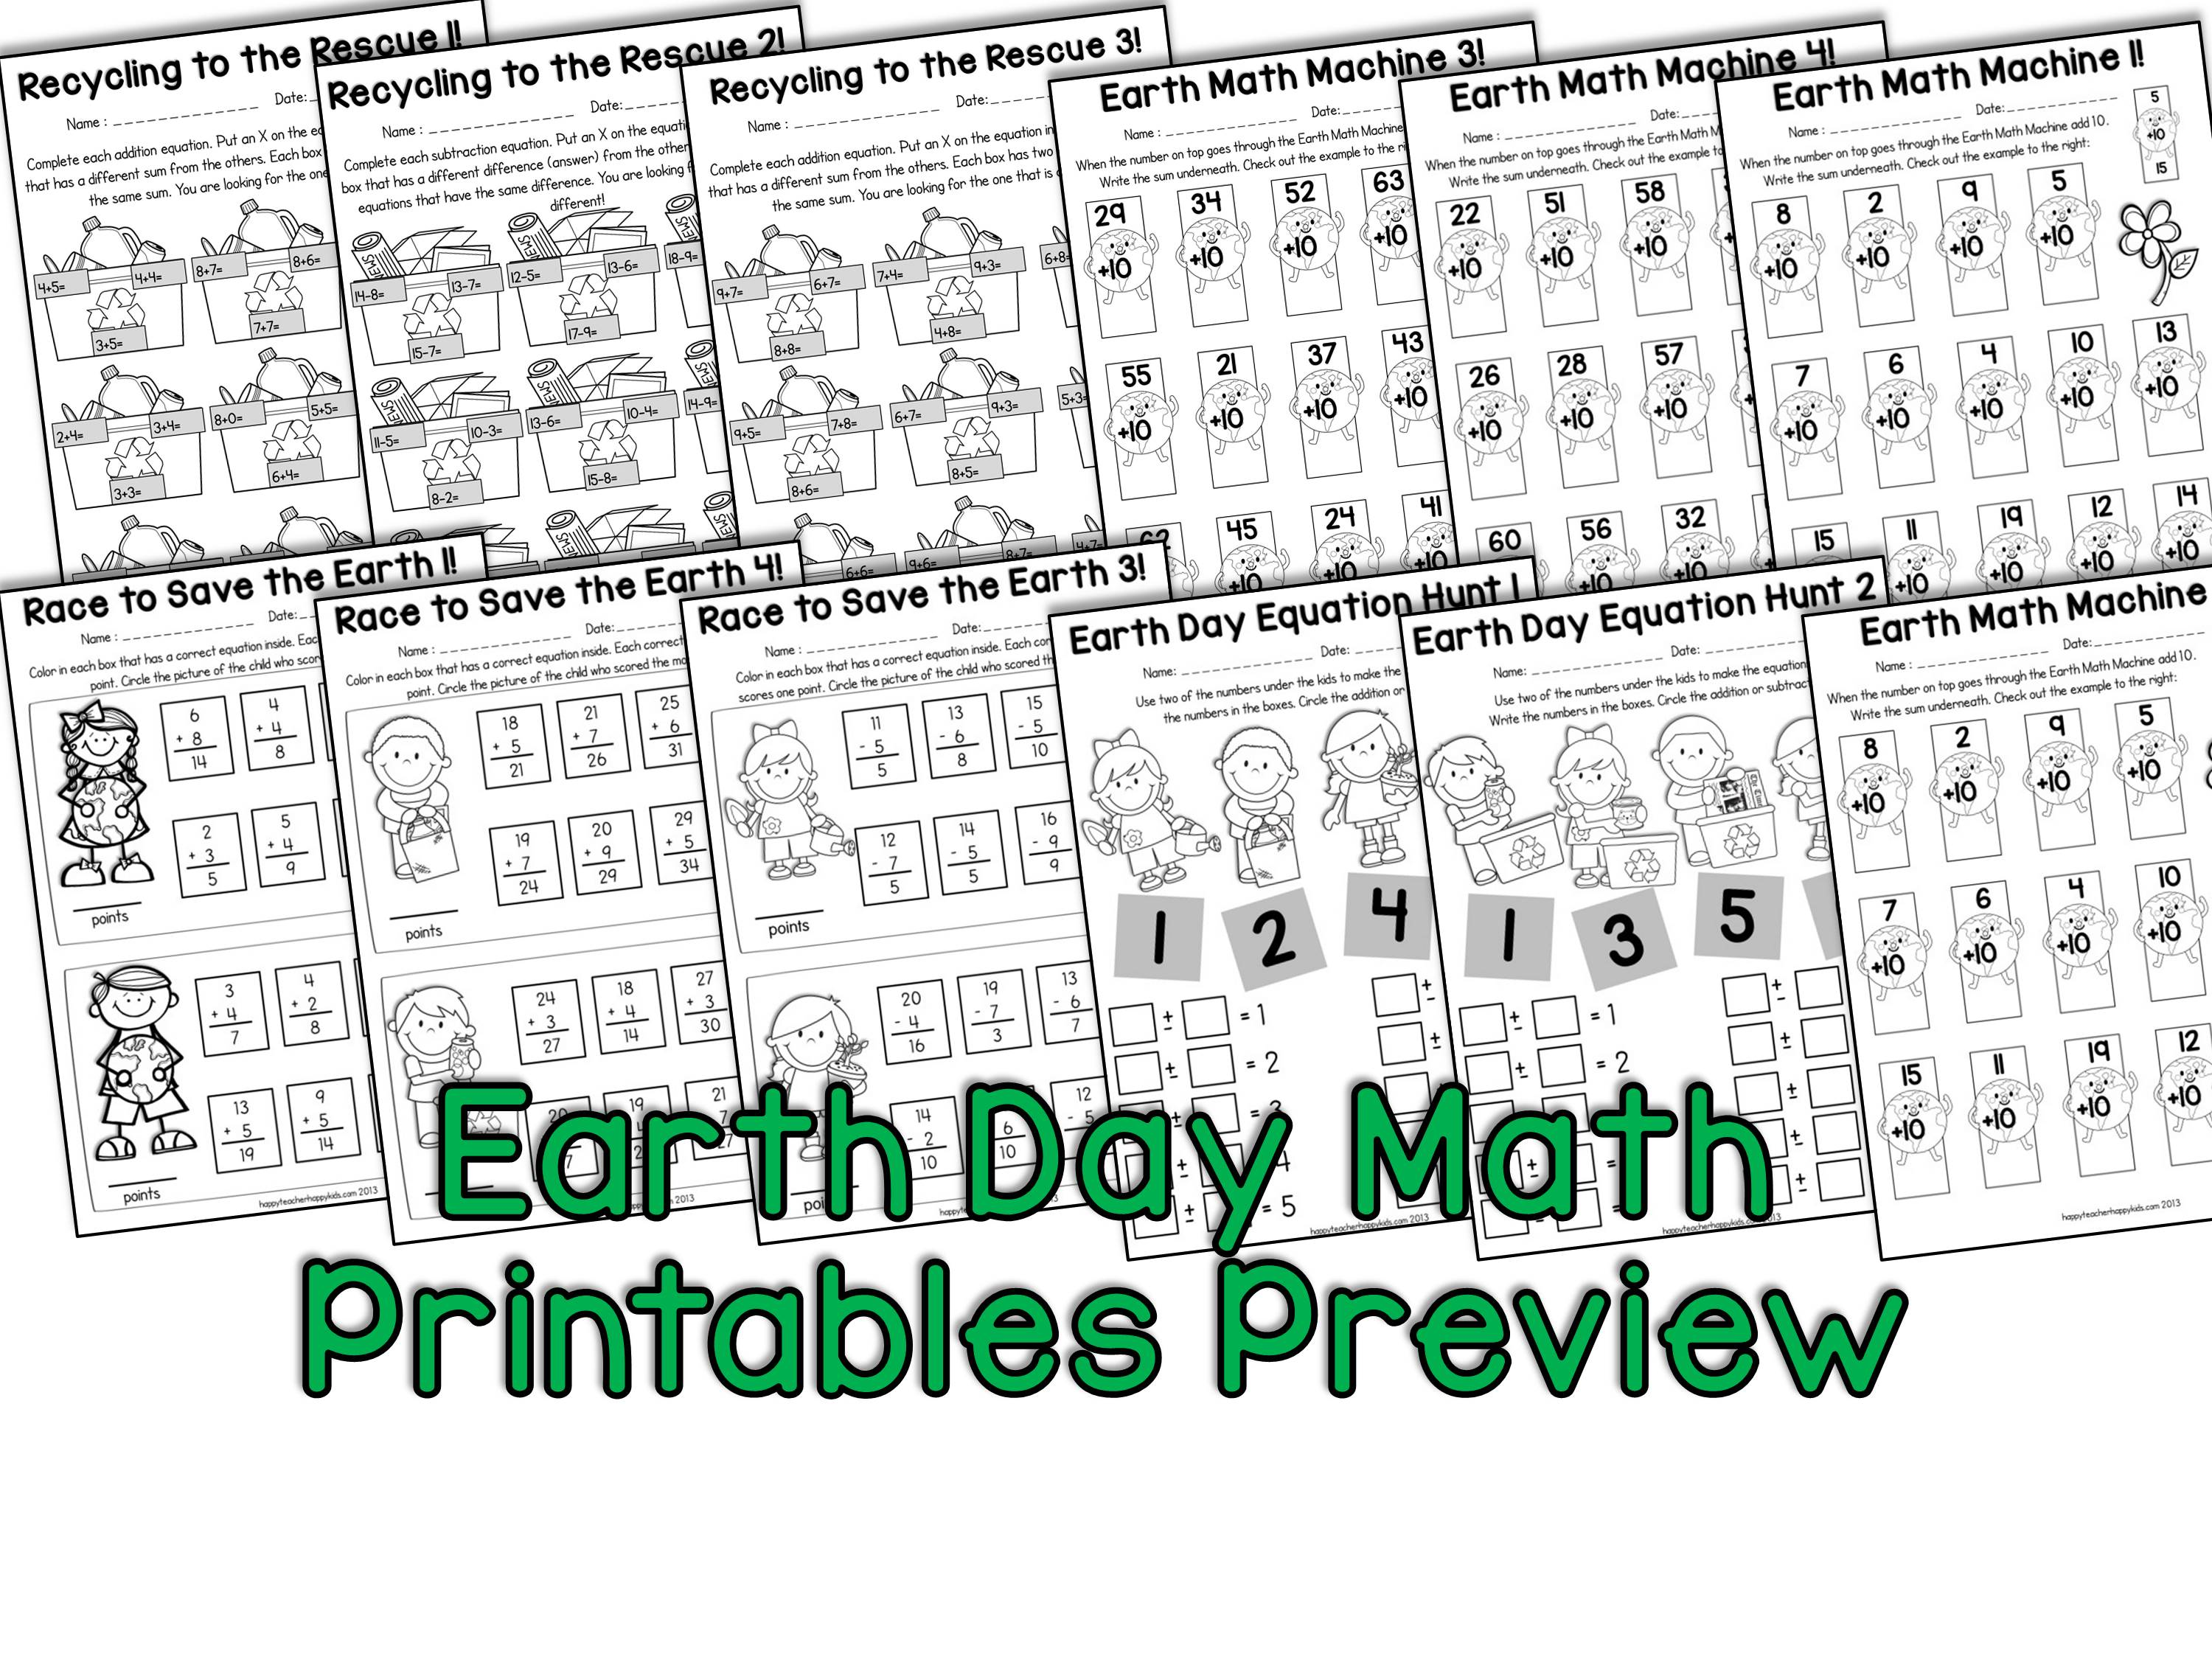 Earth Day Math Printables For Blog Preview